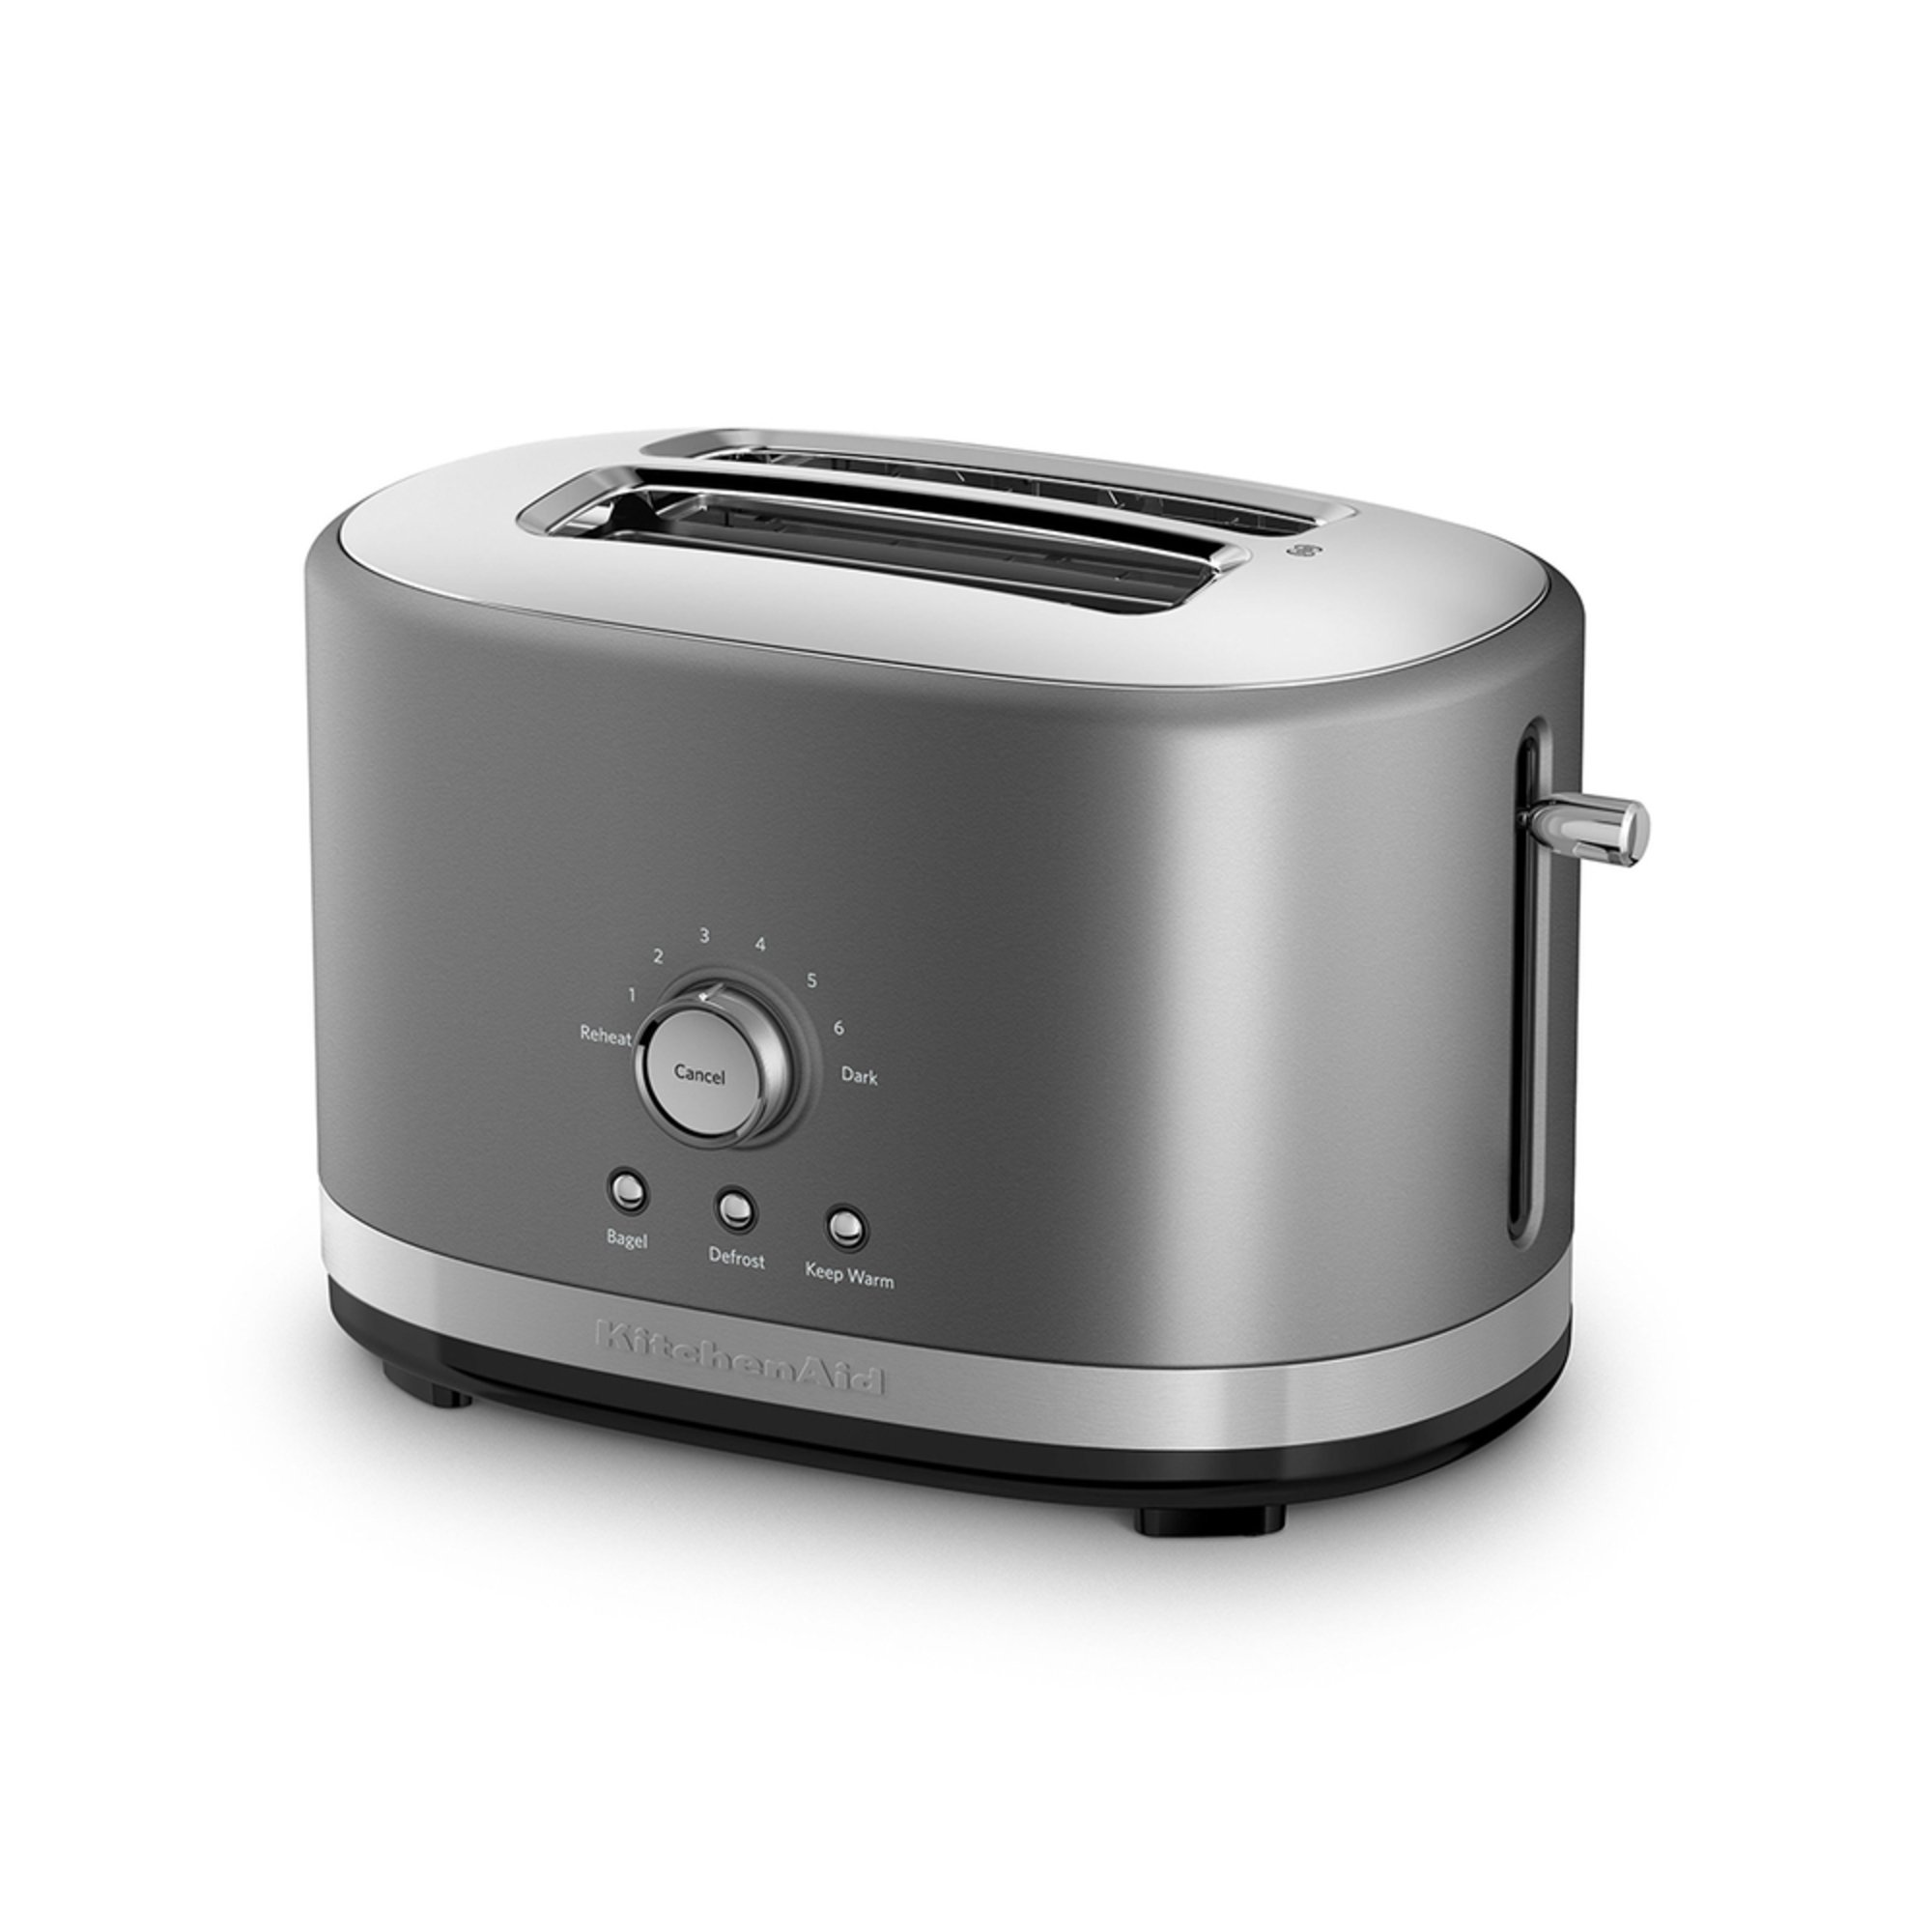 Kitchenaid 2 slice wide slot toaster w high lift lever contour silver kmt2116cu toasters - Artisan toaster slice ...